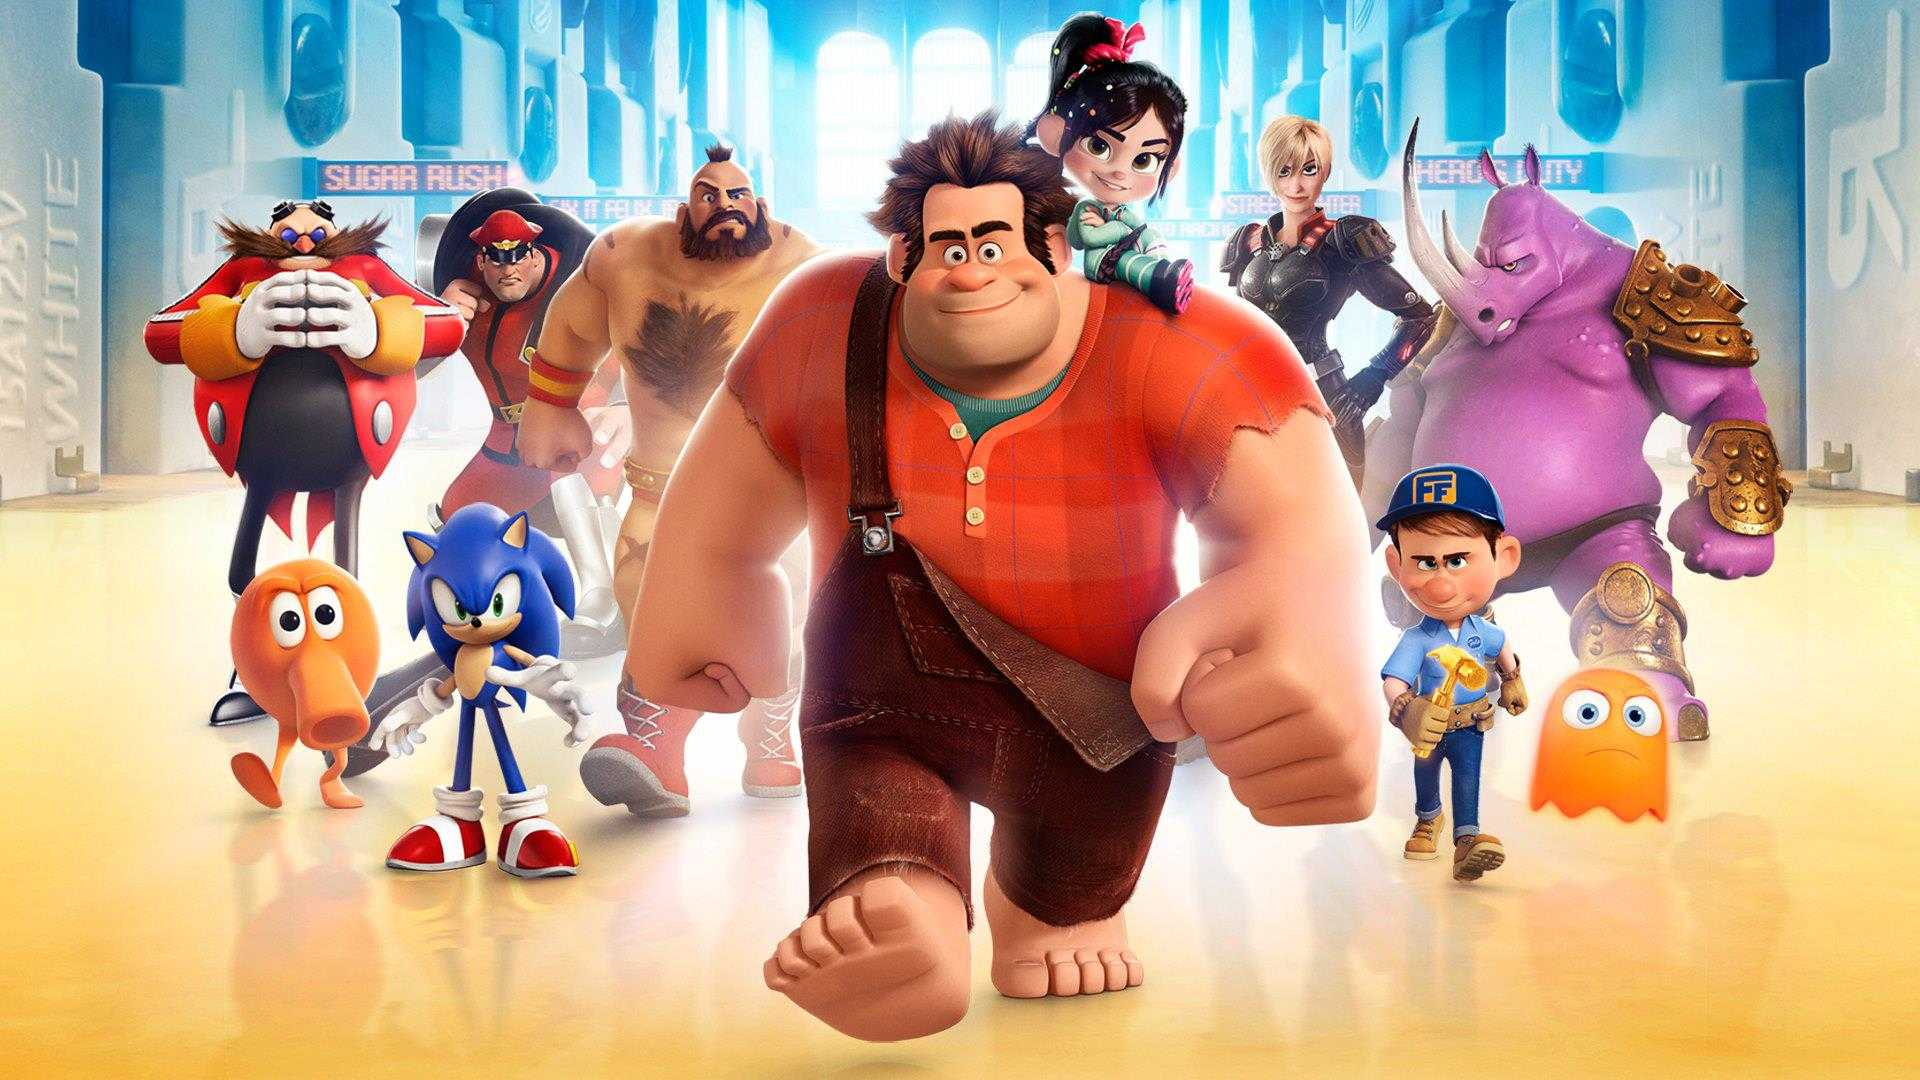 Wreck It Ralph 2 Brings All Of The Disney Princesses Together